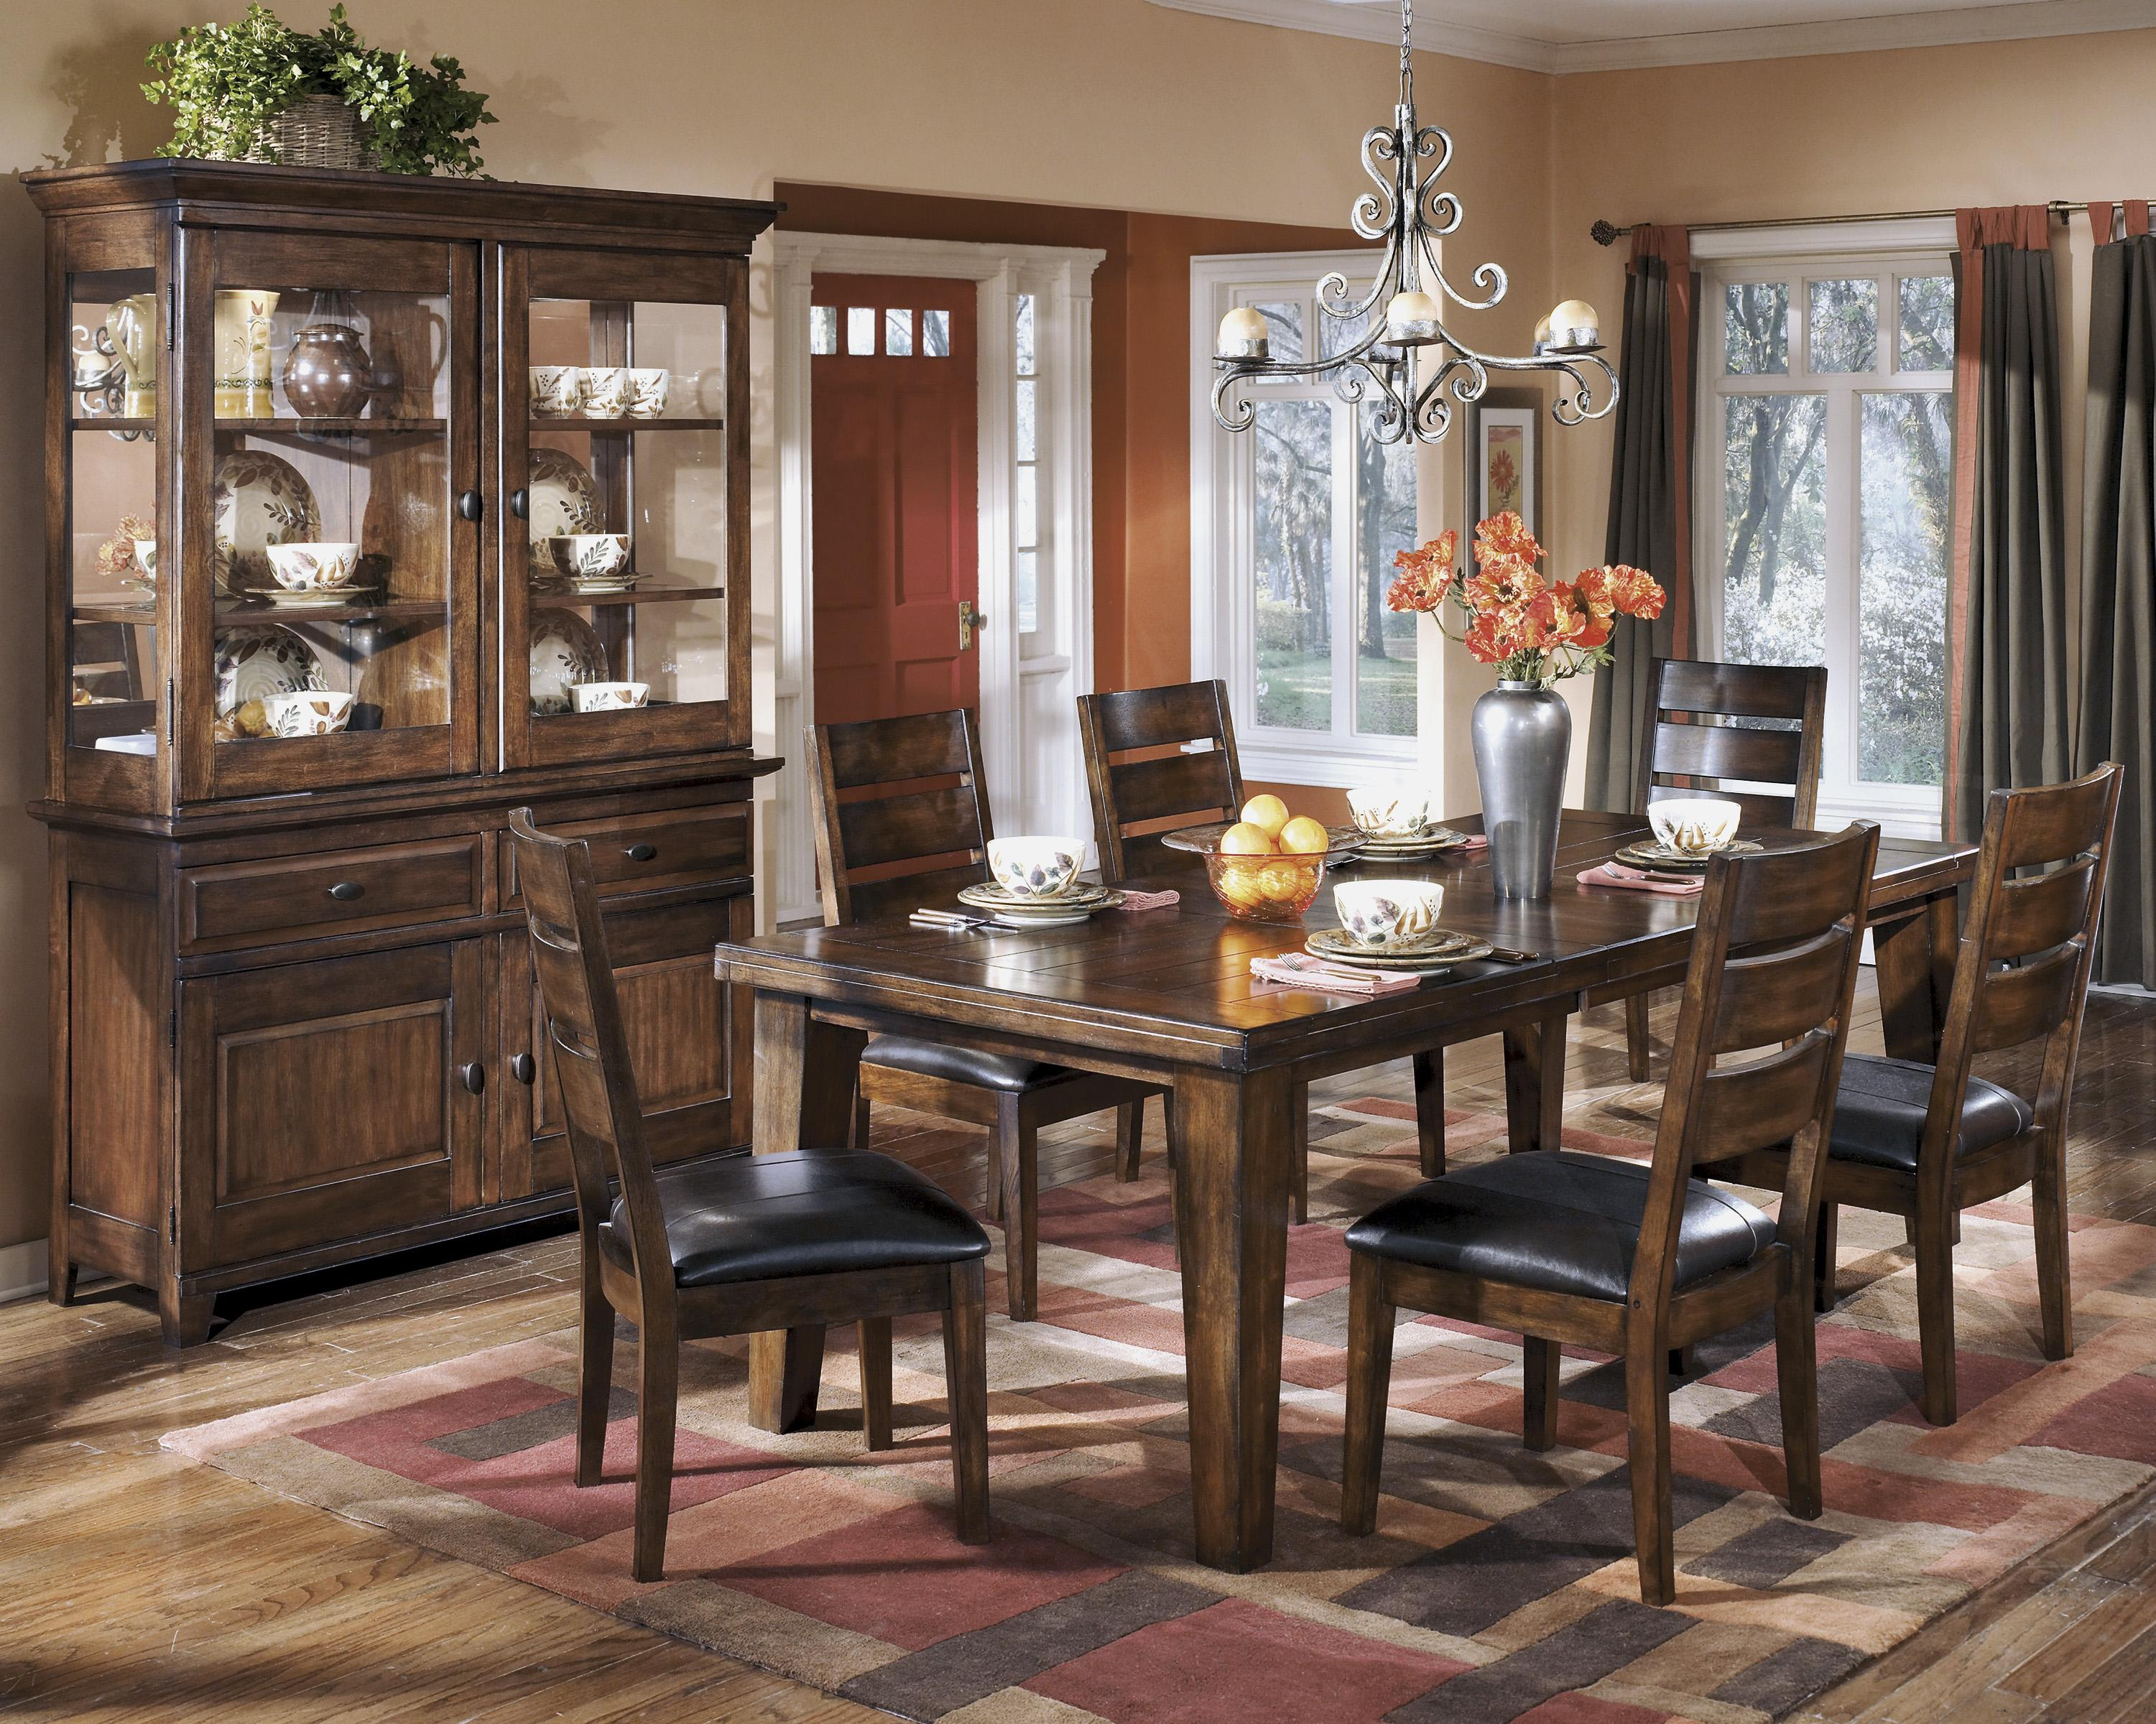 Signature Design by Ashley Larchmont Casual Dining Room Group - Item Number: D442 Dining Room Group 4